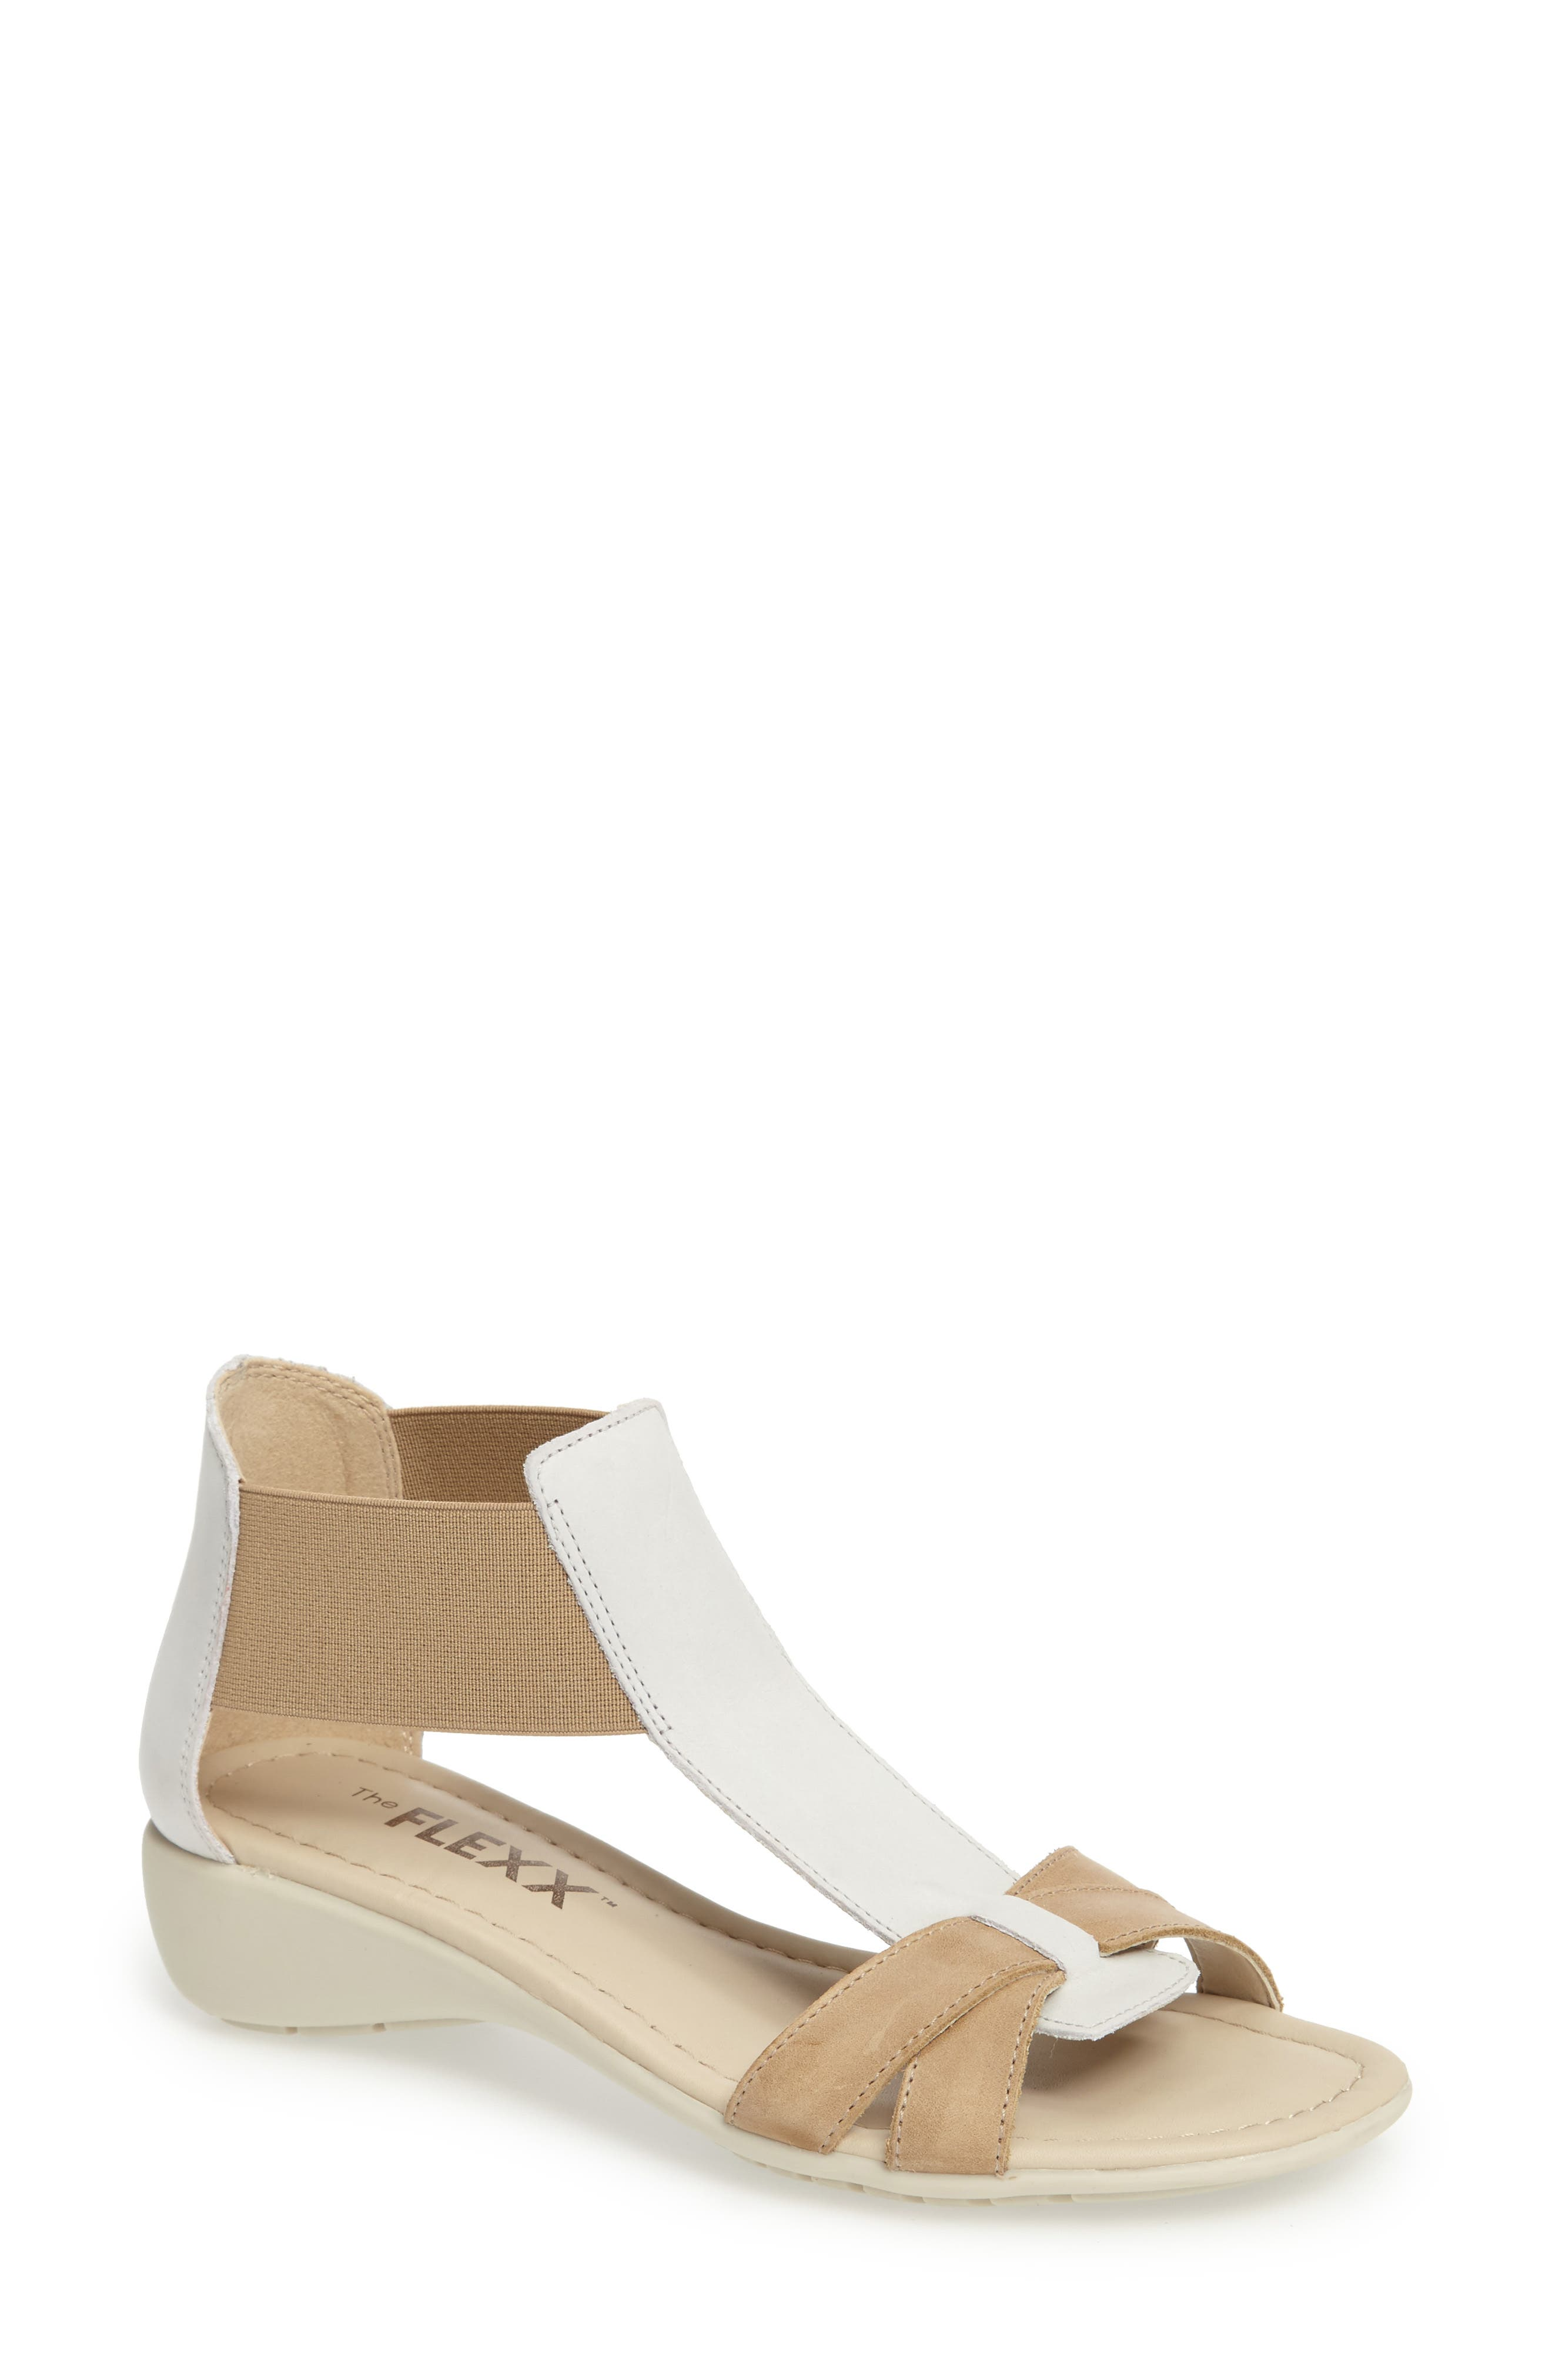 Main Image - The FLEXX 'Band Together' Sandal